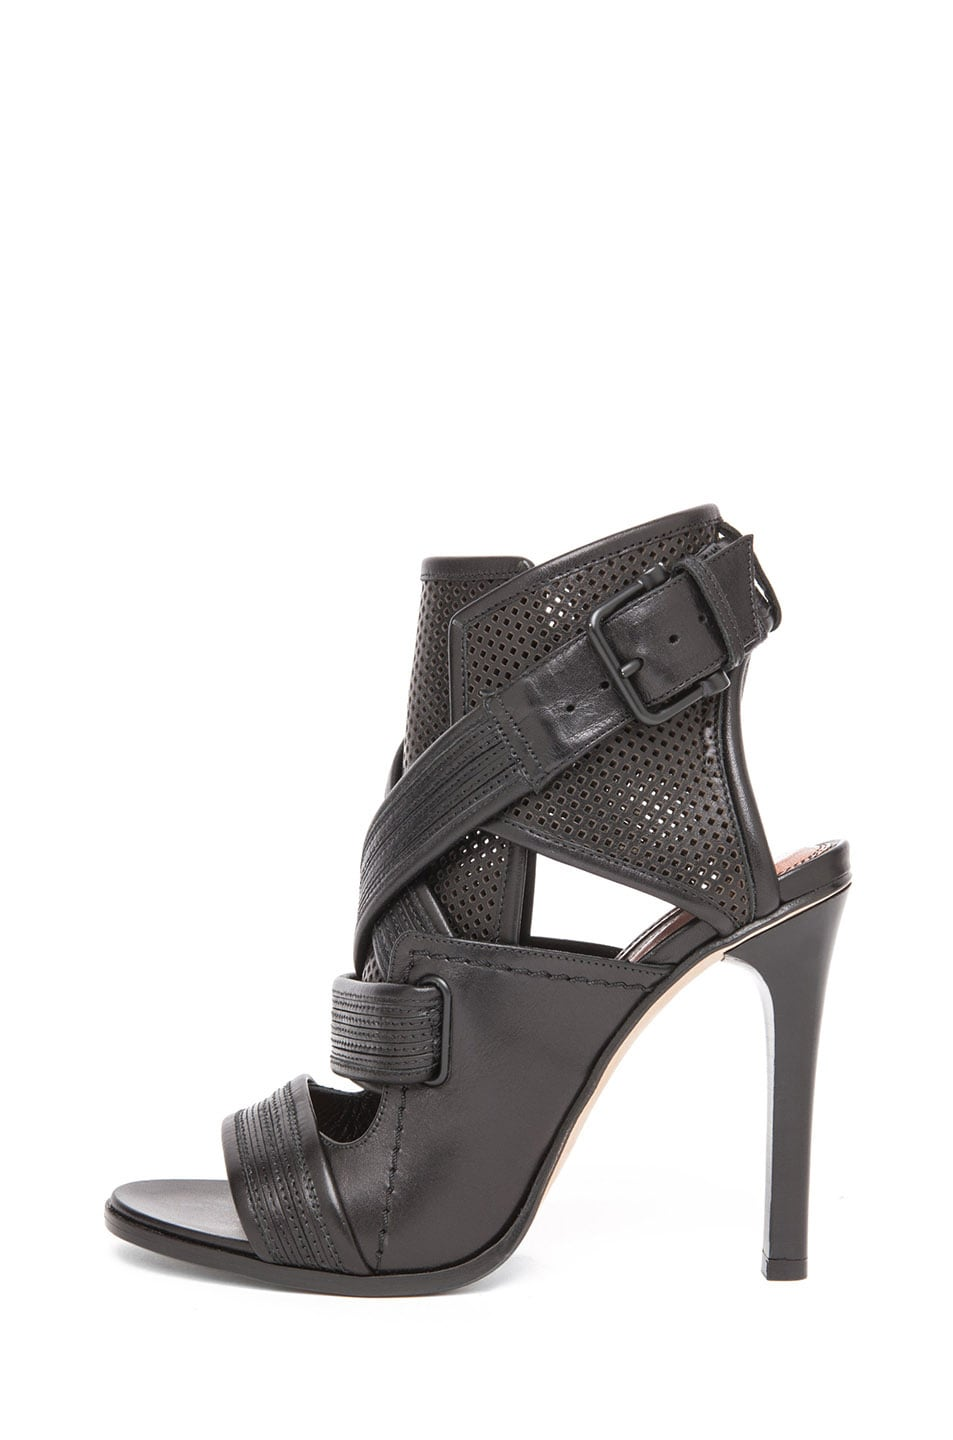 23a026c113be23 Image 1 of Derek Lam Beau Sandal Heel in Black